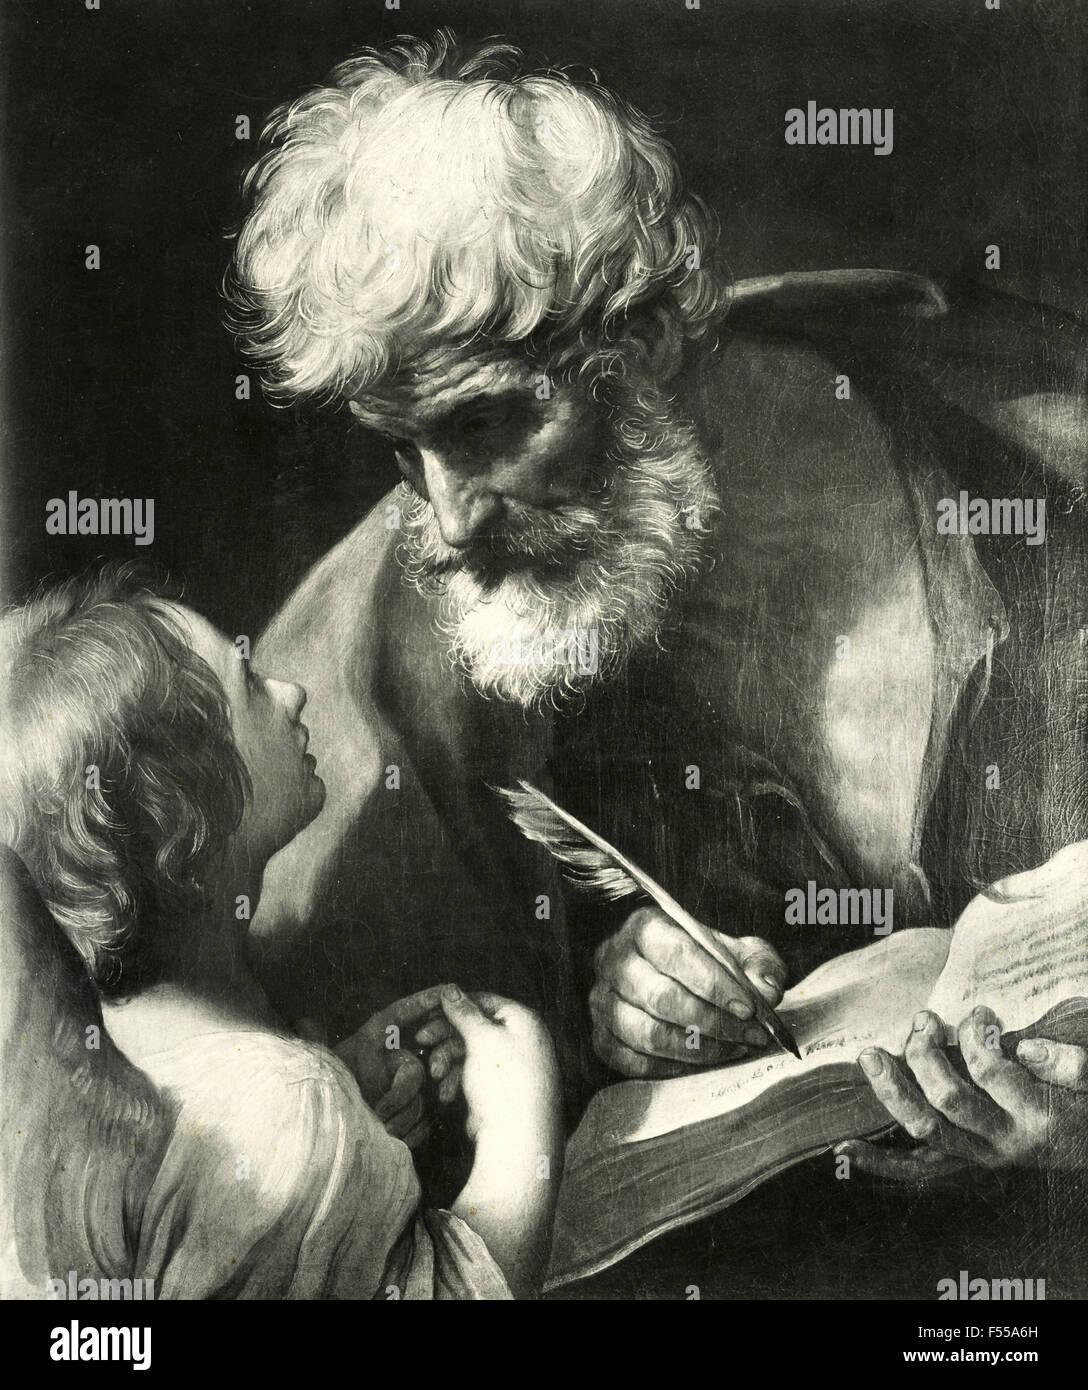 Vatican picture gallery: St. Matthew and the Angel, painting by Guido Reni - Stock Image